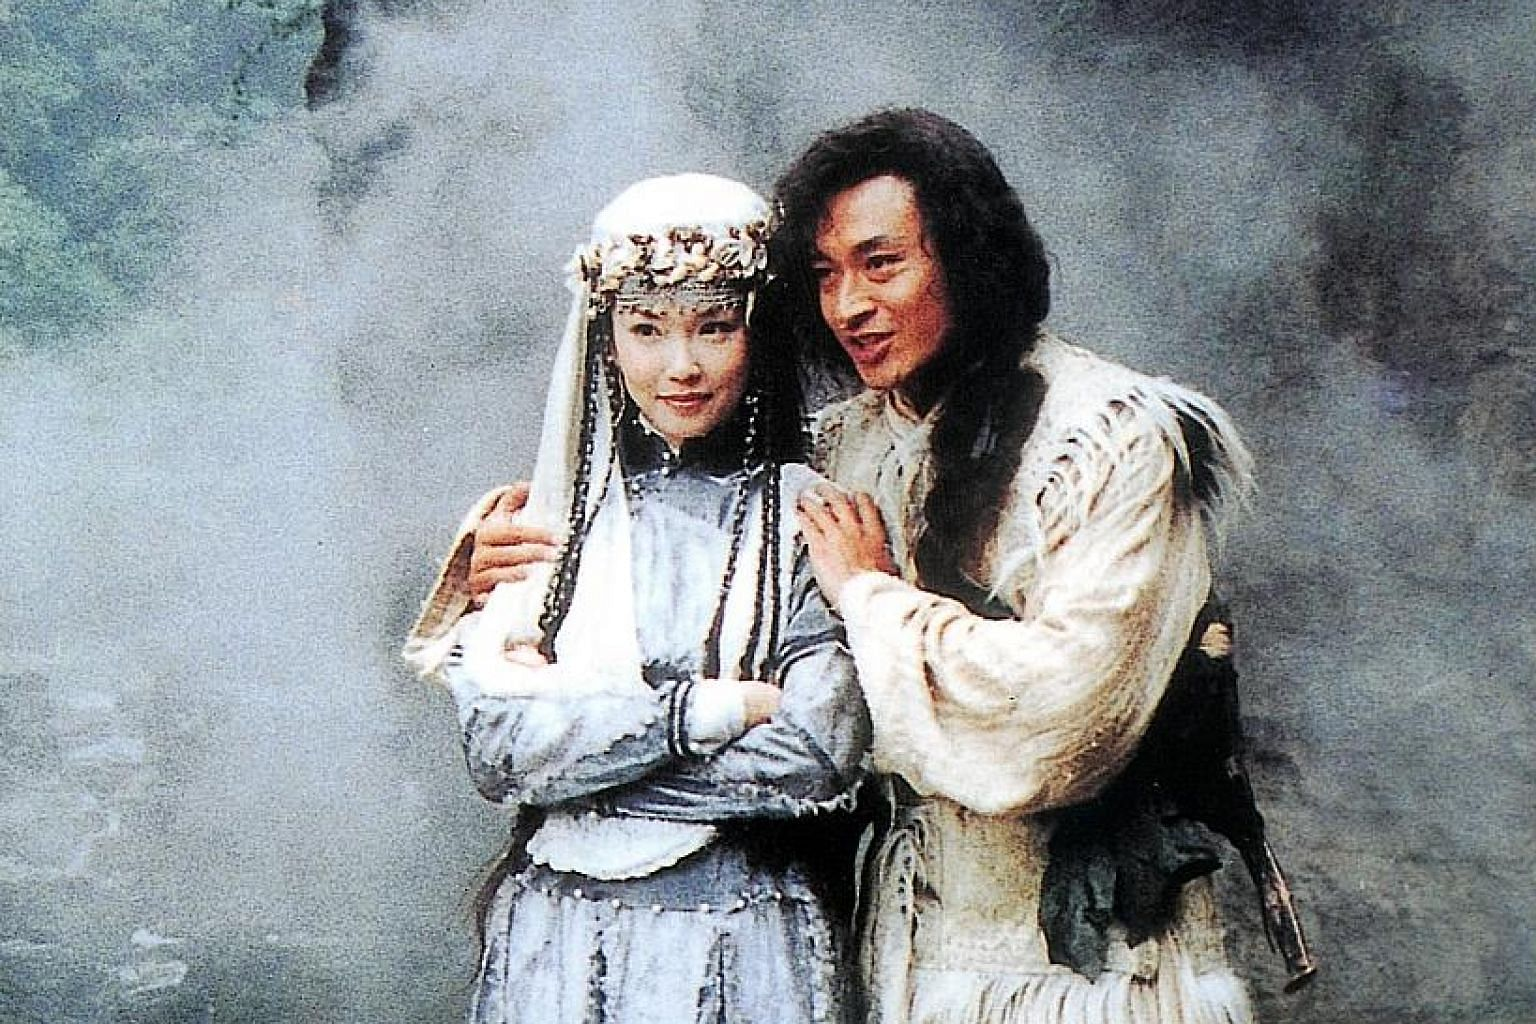 A 2000 Singapore television adaptation of The Legendary Swordsman starred local actress Fann Wong and Taiwanese actor Ma Jingtao (both left), who played the titular character, Linghu Chong.